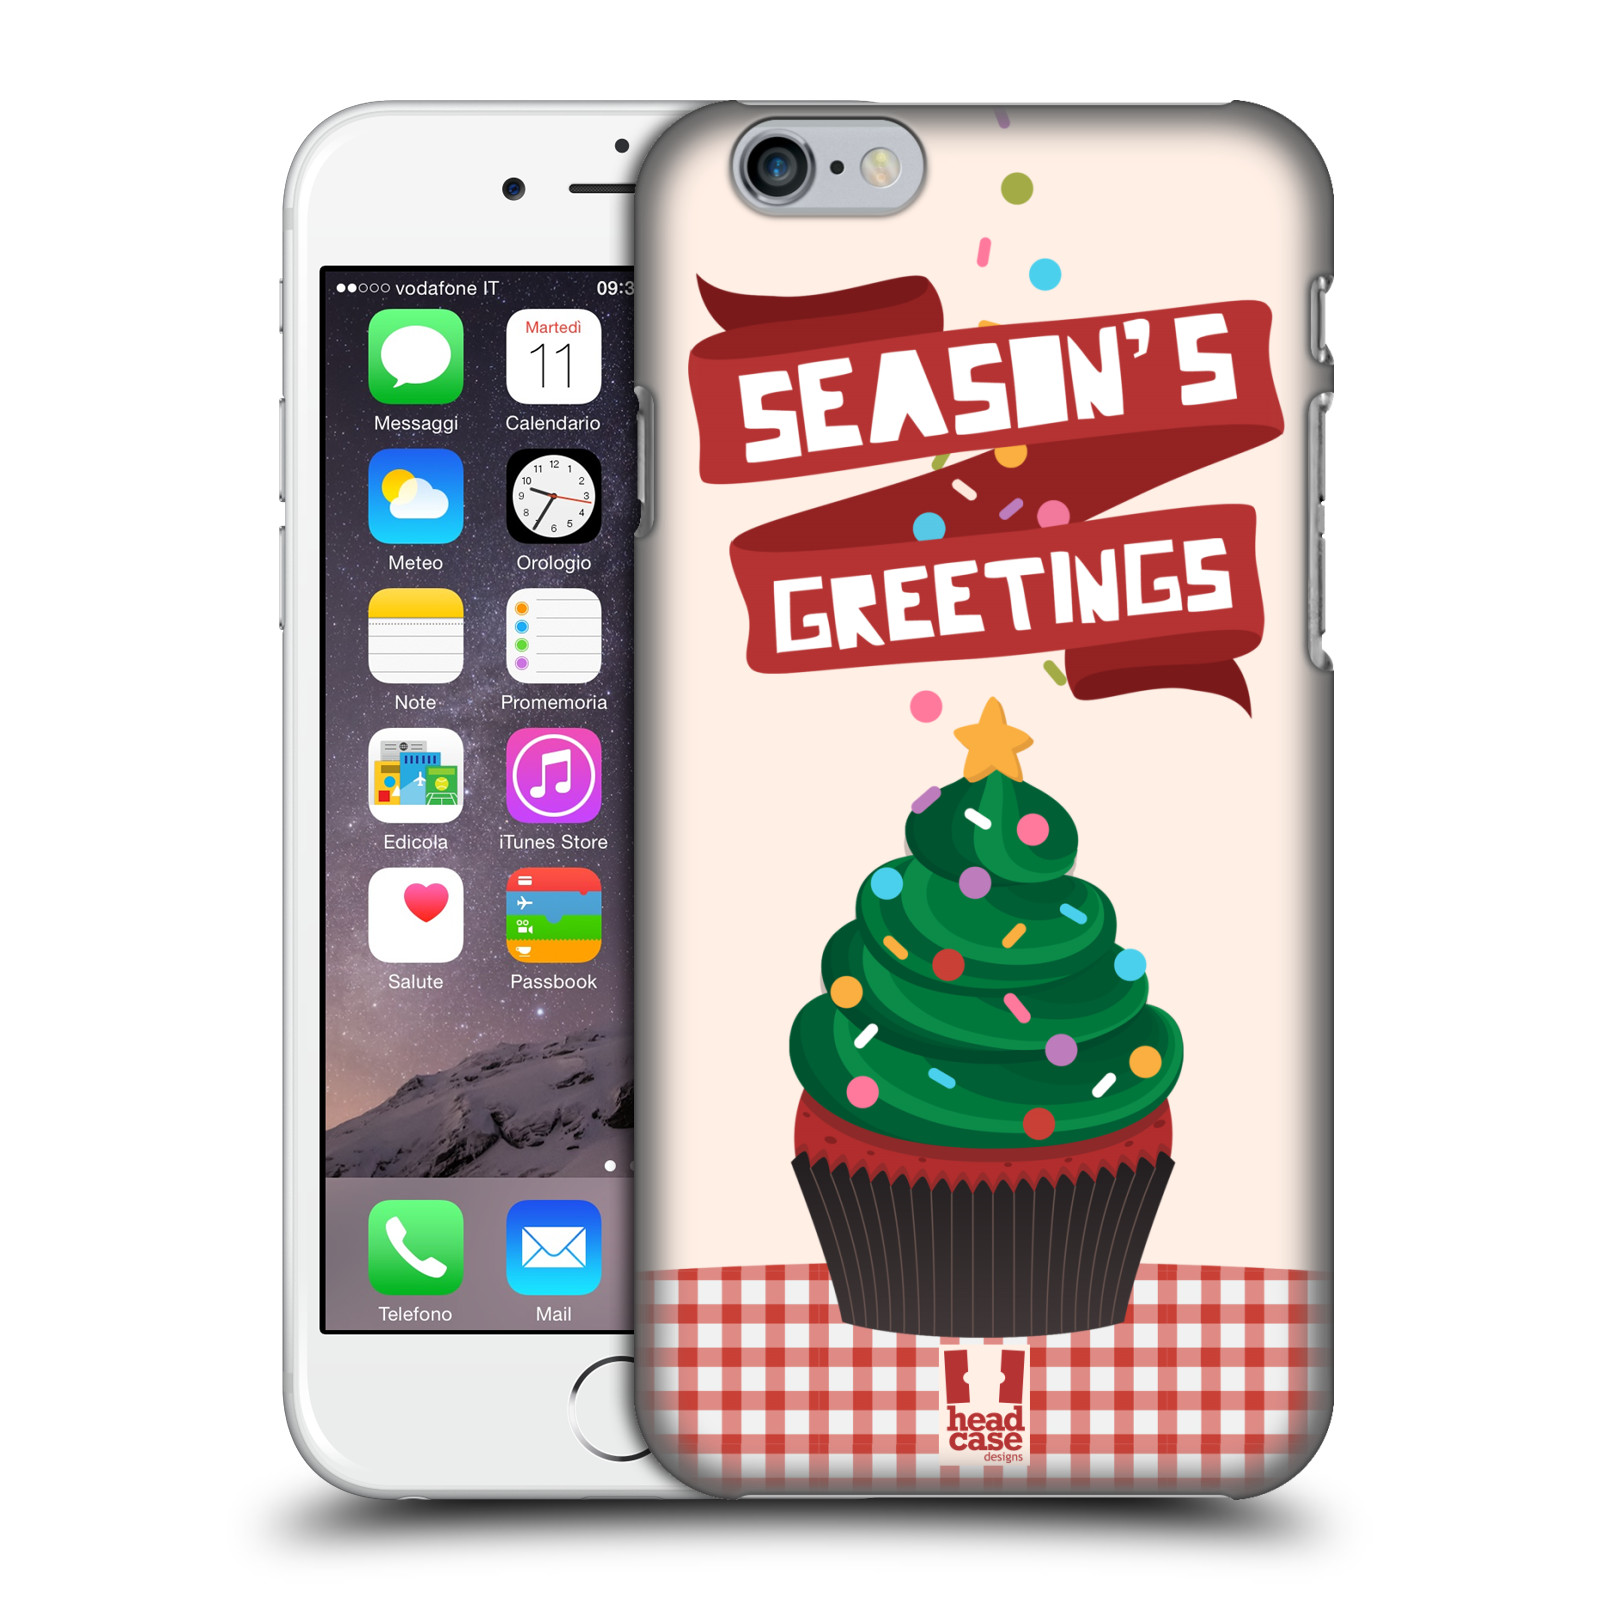 HEAD-CASE-DESIGNS-ALBERI-FELICI-COVER-RETRO-RIGIDA-PER-APPLE-iPHONE-TELEFONI